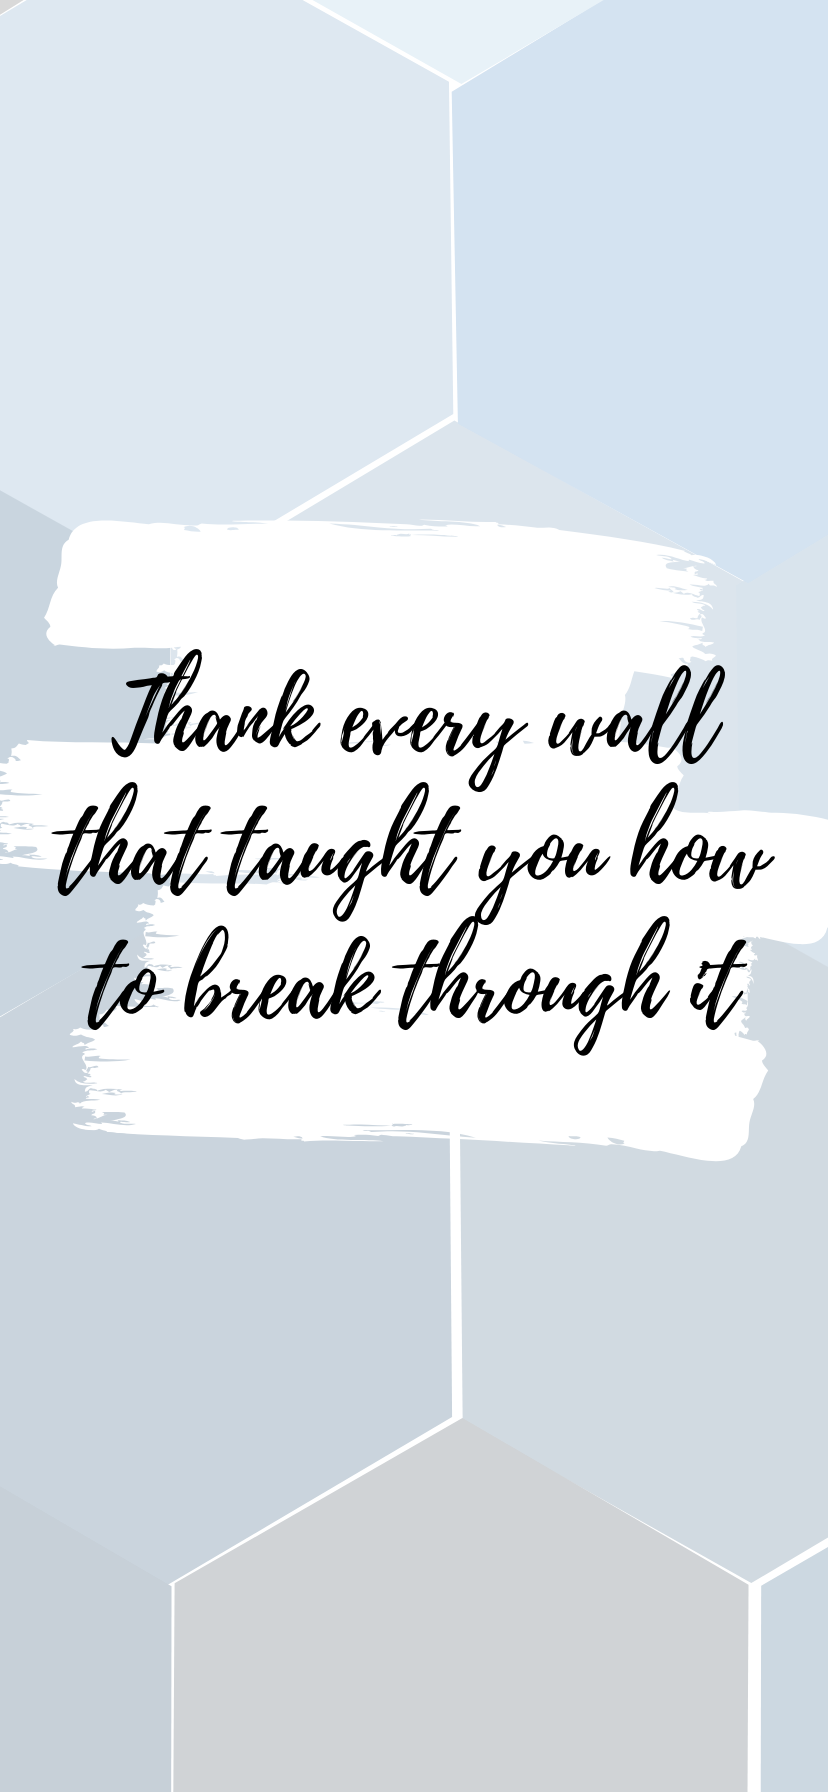 Thank every wall that taught you how to break through it 3